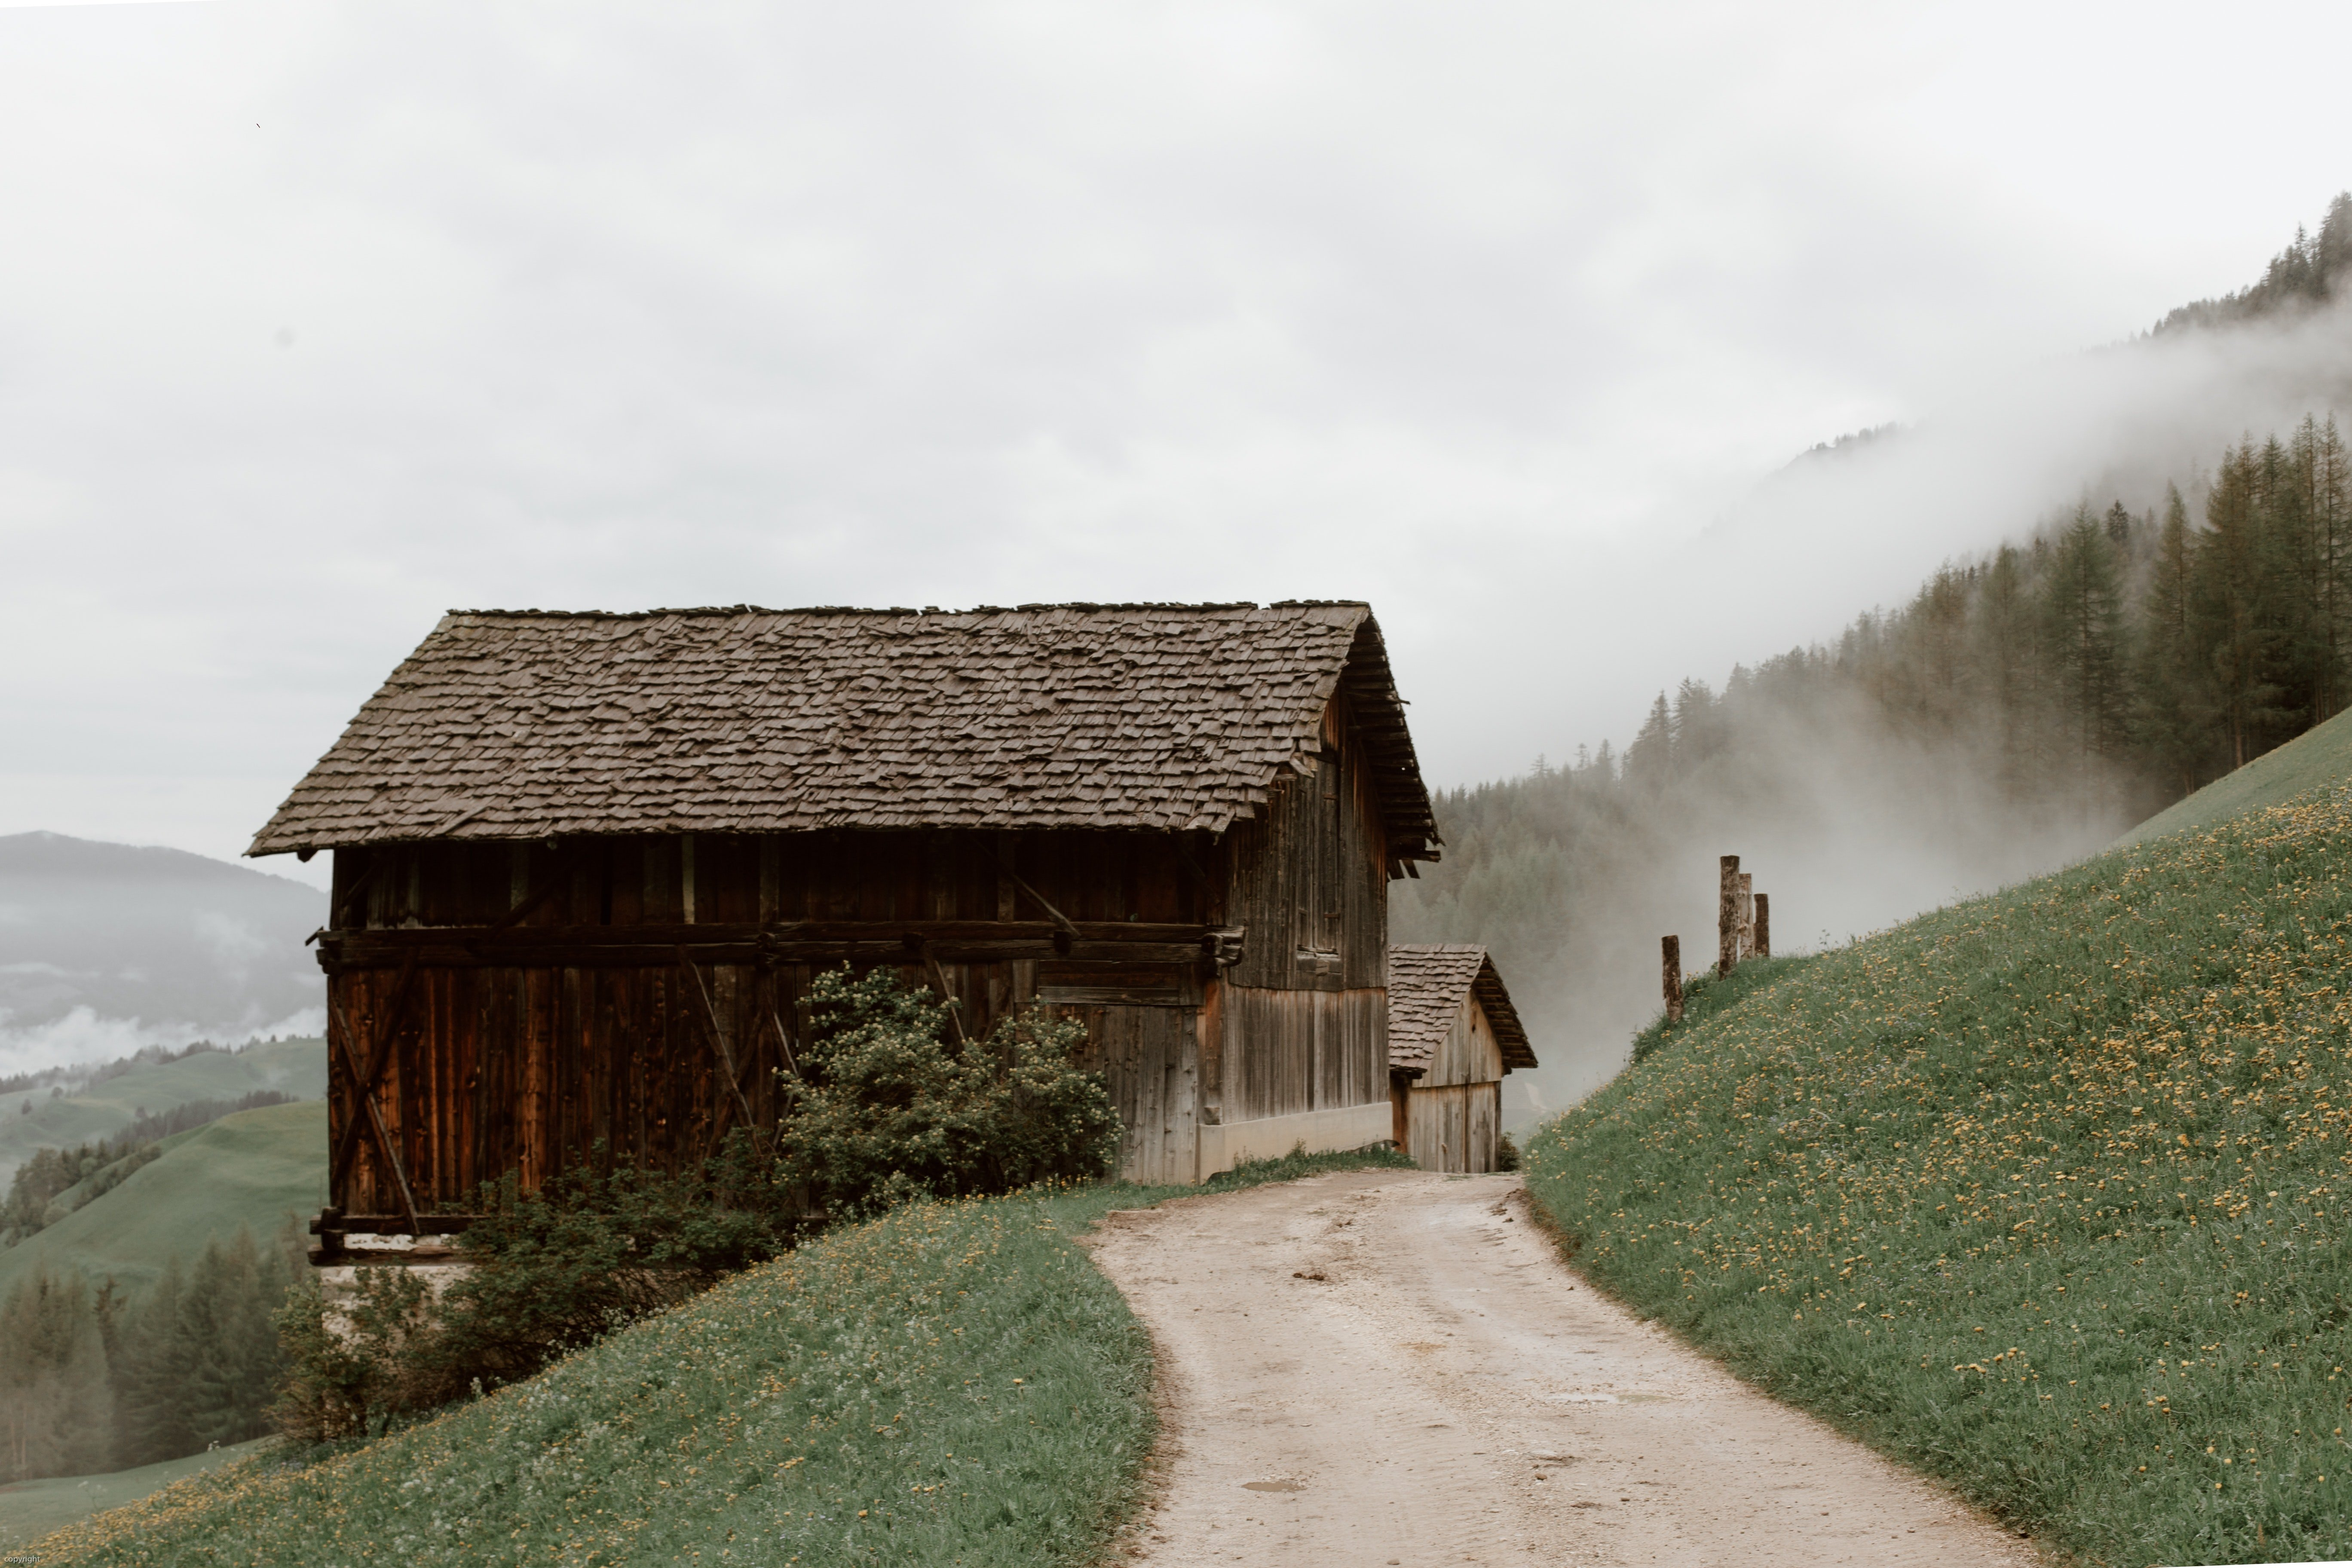 Pictured - A photo of rural houses on a slope   Source: Pexels